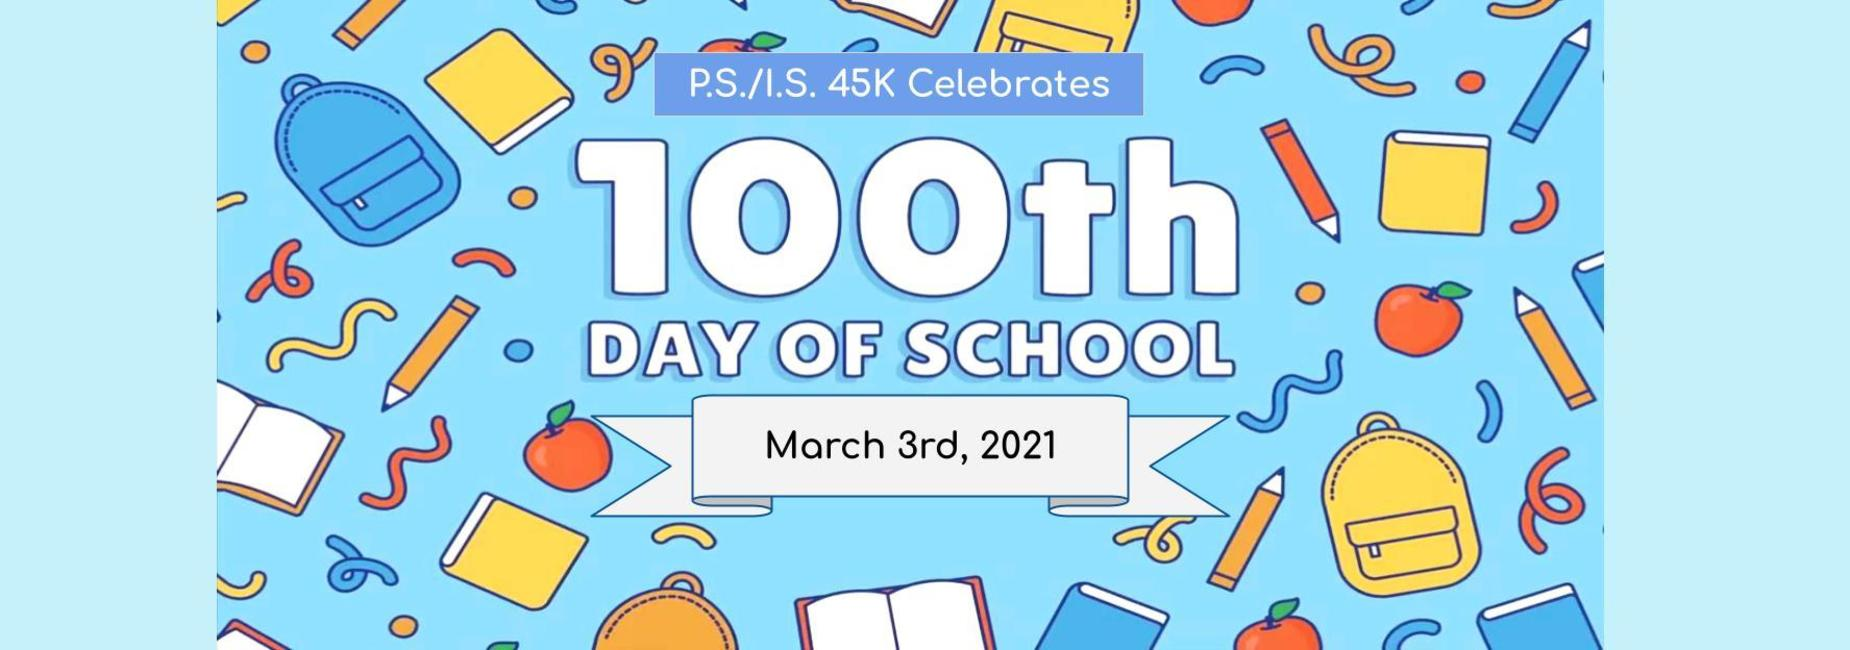 P.S./I.S. 45K Celebrates the 100th day of School on March 3rd, 2021.